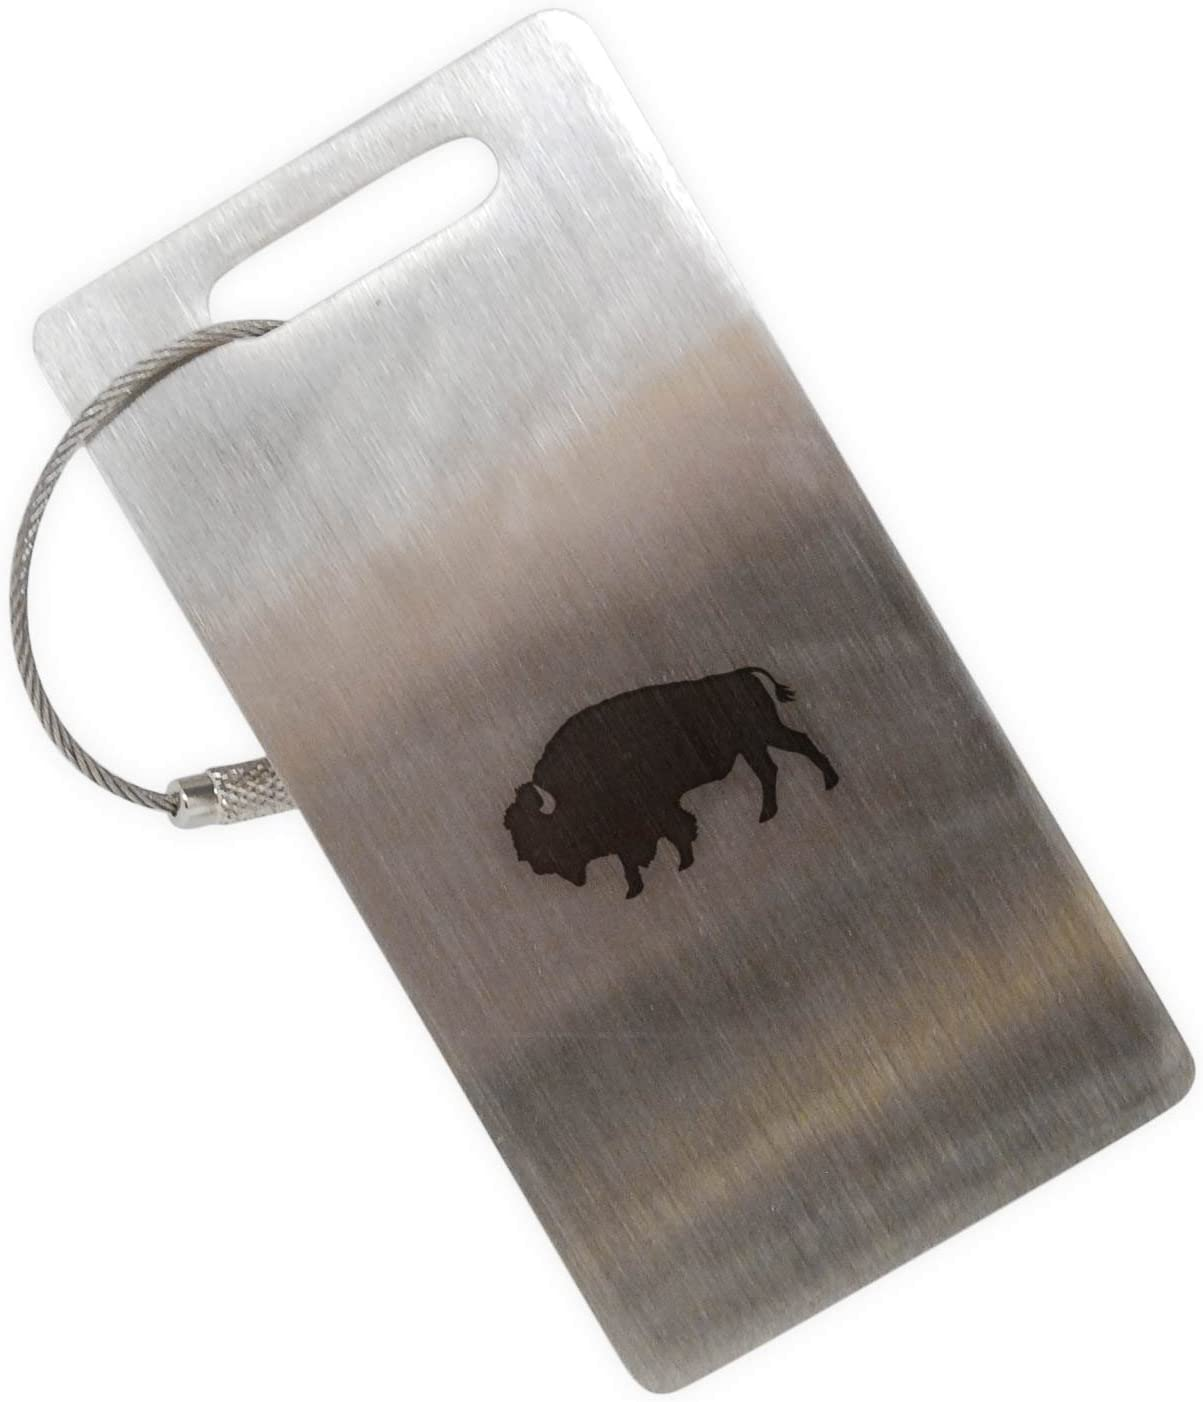 2 Pack Luggage Tags Buffaloes Cruise Luggage Tag For Travel Tags Accessories